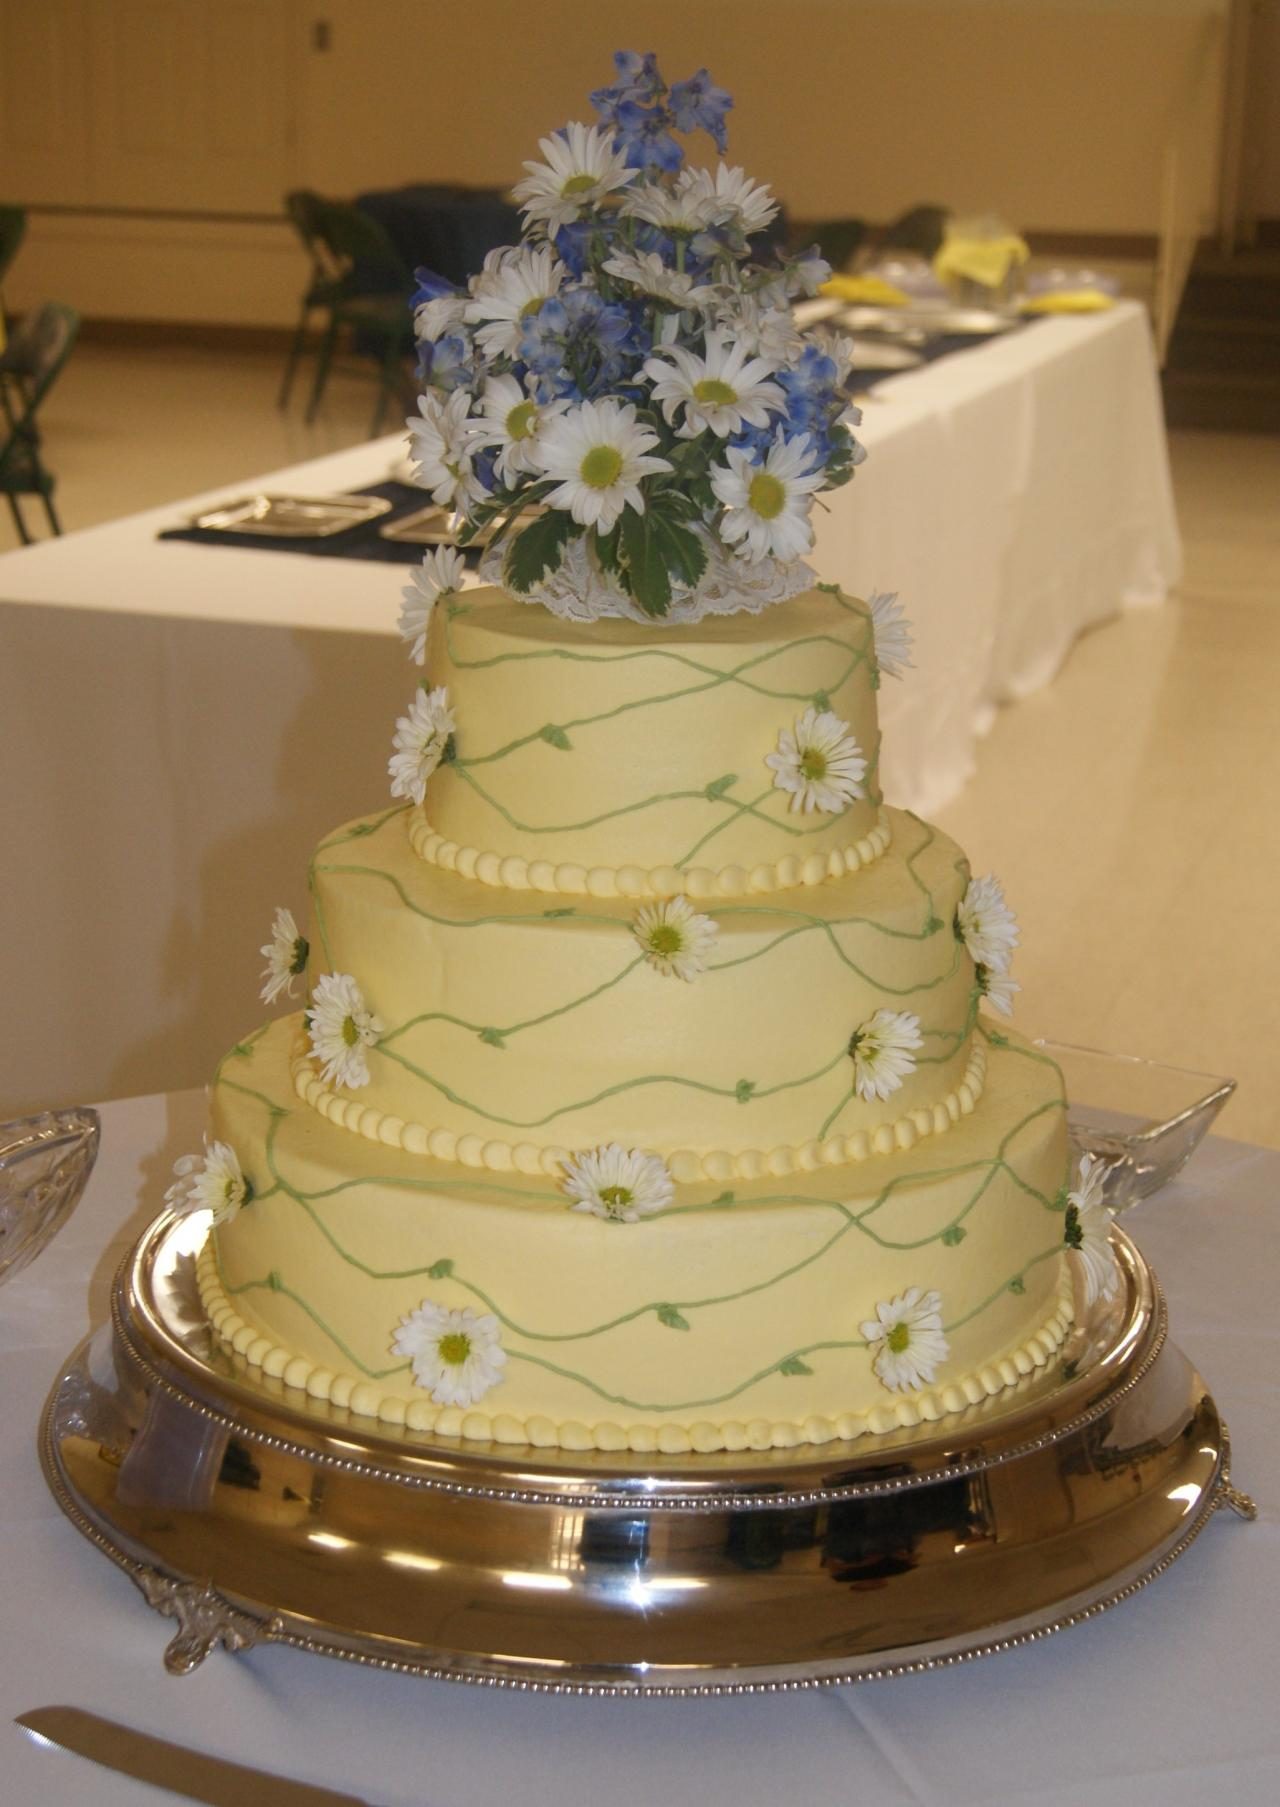 Embree House Wedding Cakes - Wedding Cakes Page 7